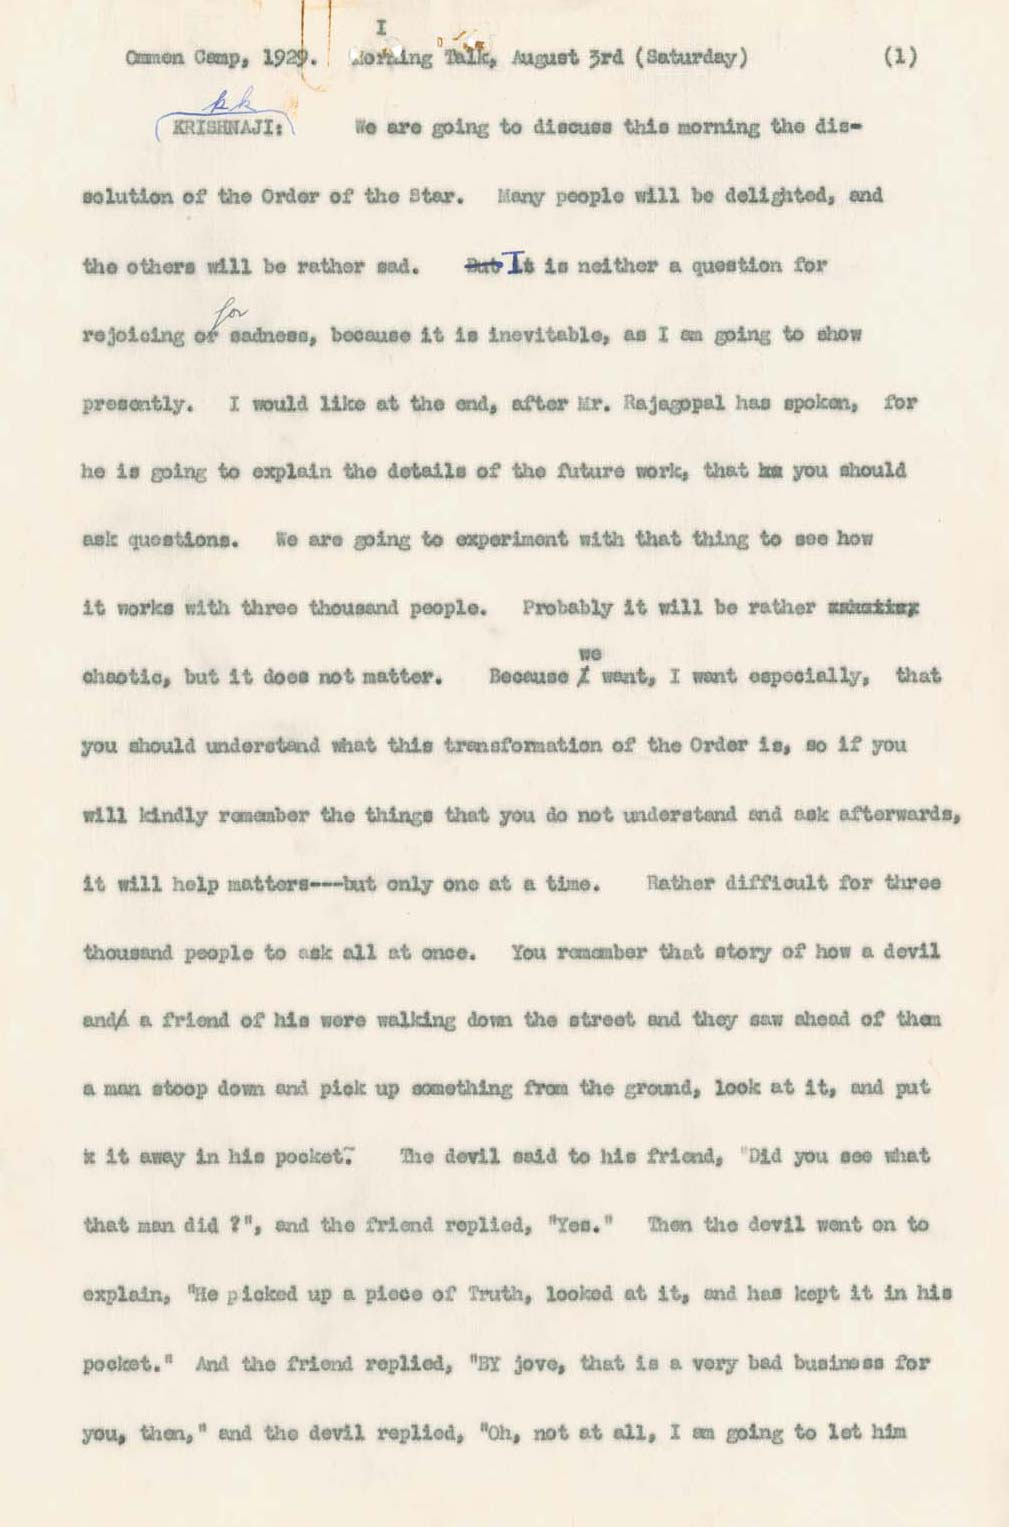 Typescripts from Stenographers notes - Speech - CLICK TO EXPAND